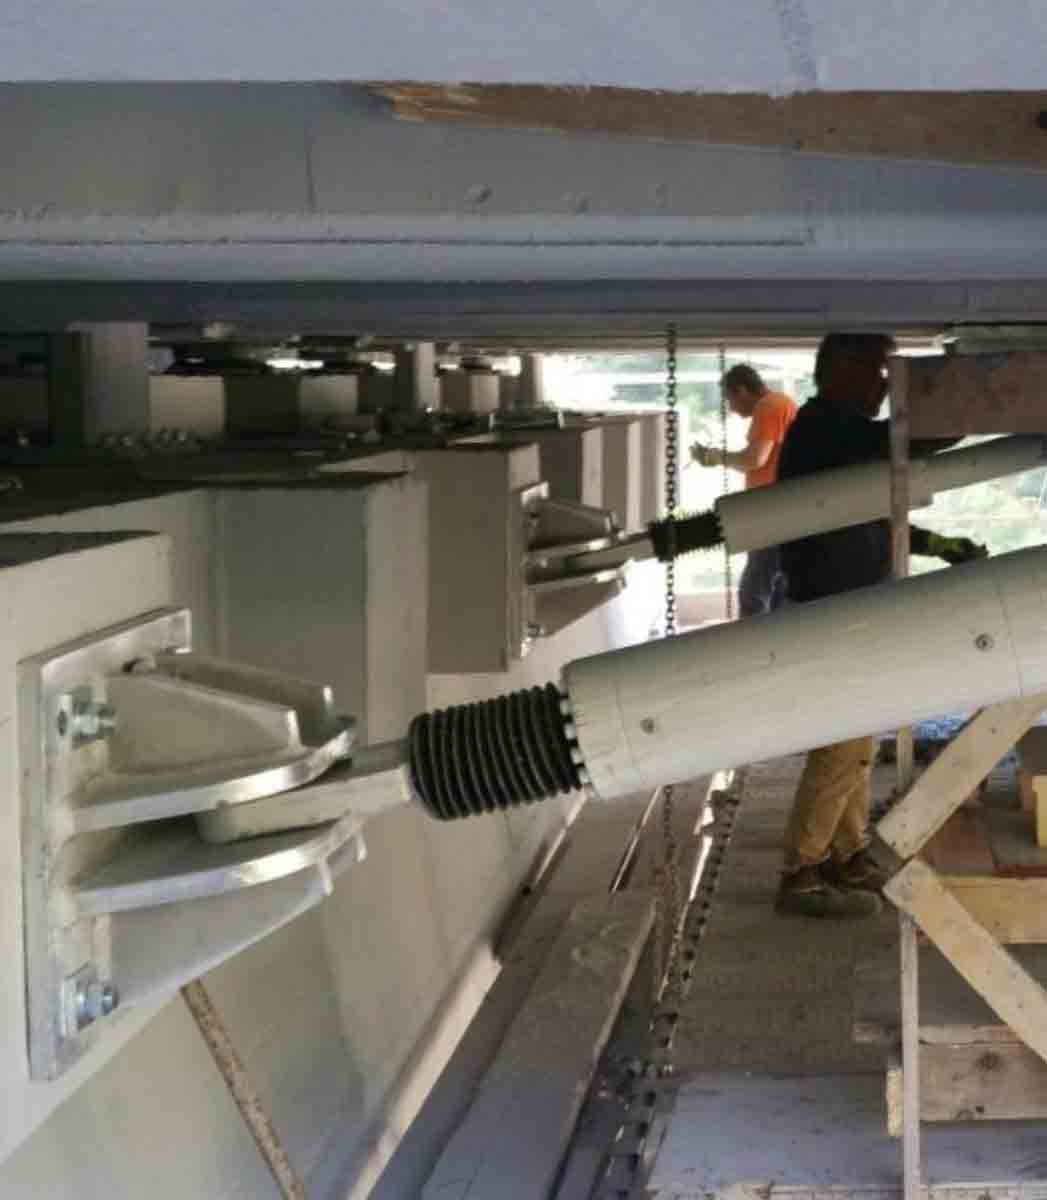 Lifting and replacement of seismic devices 1